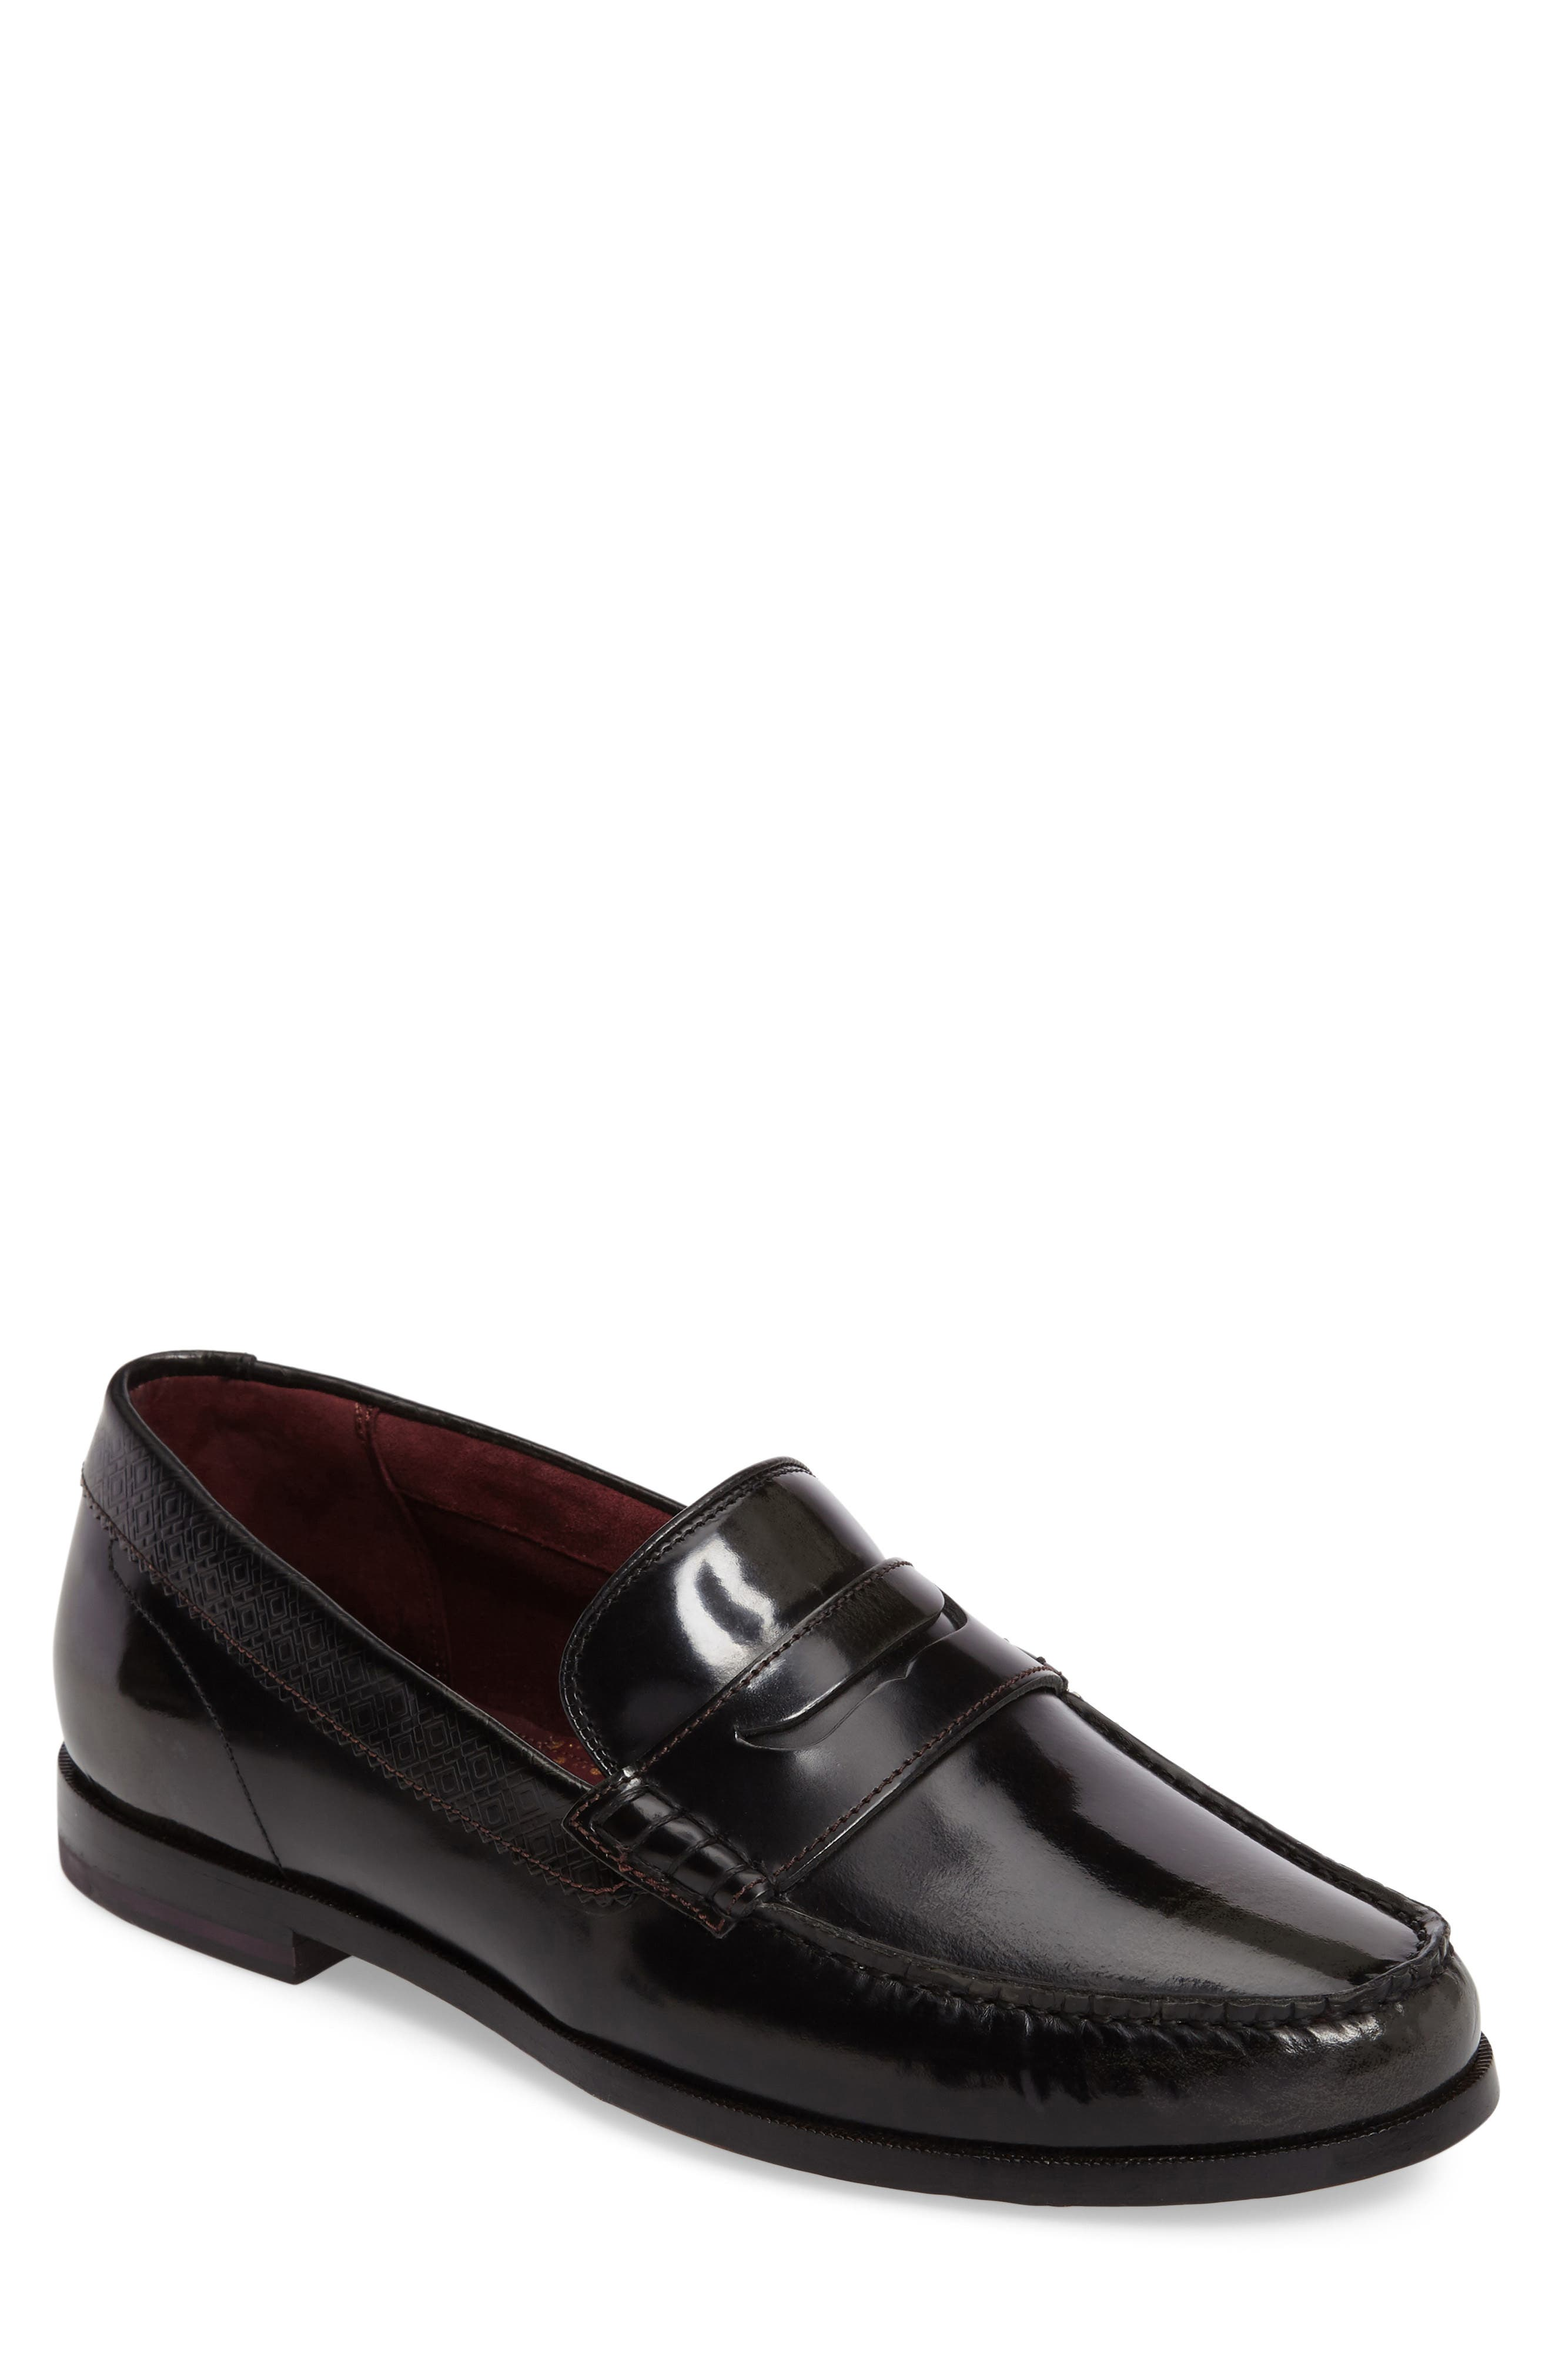 Rommeo Penny Loafer,                             Alternate thumbnail 2, color,                             028